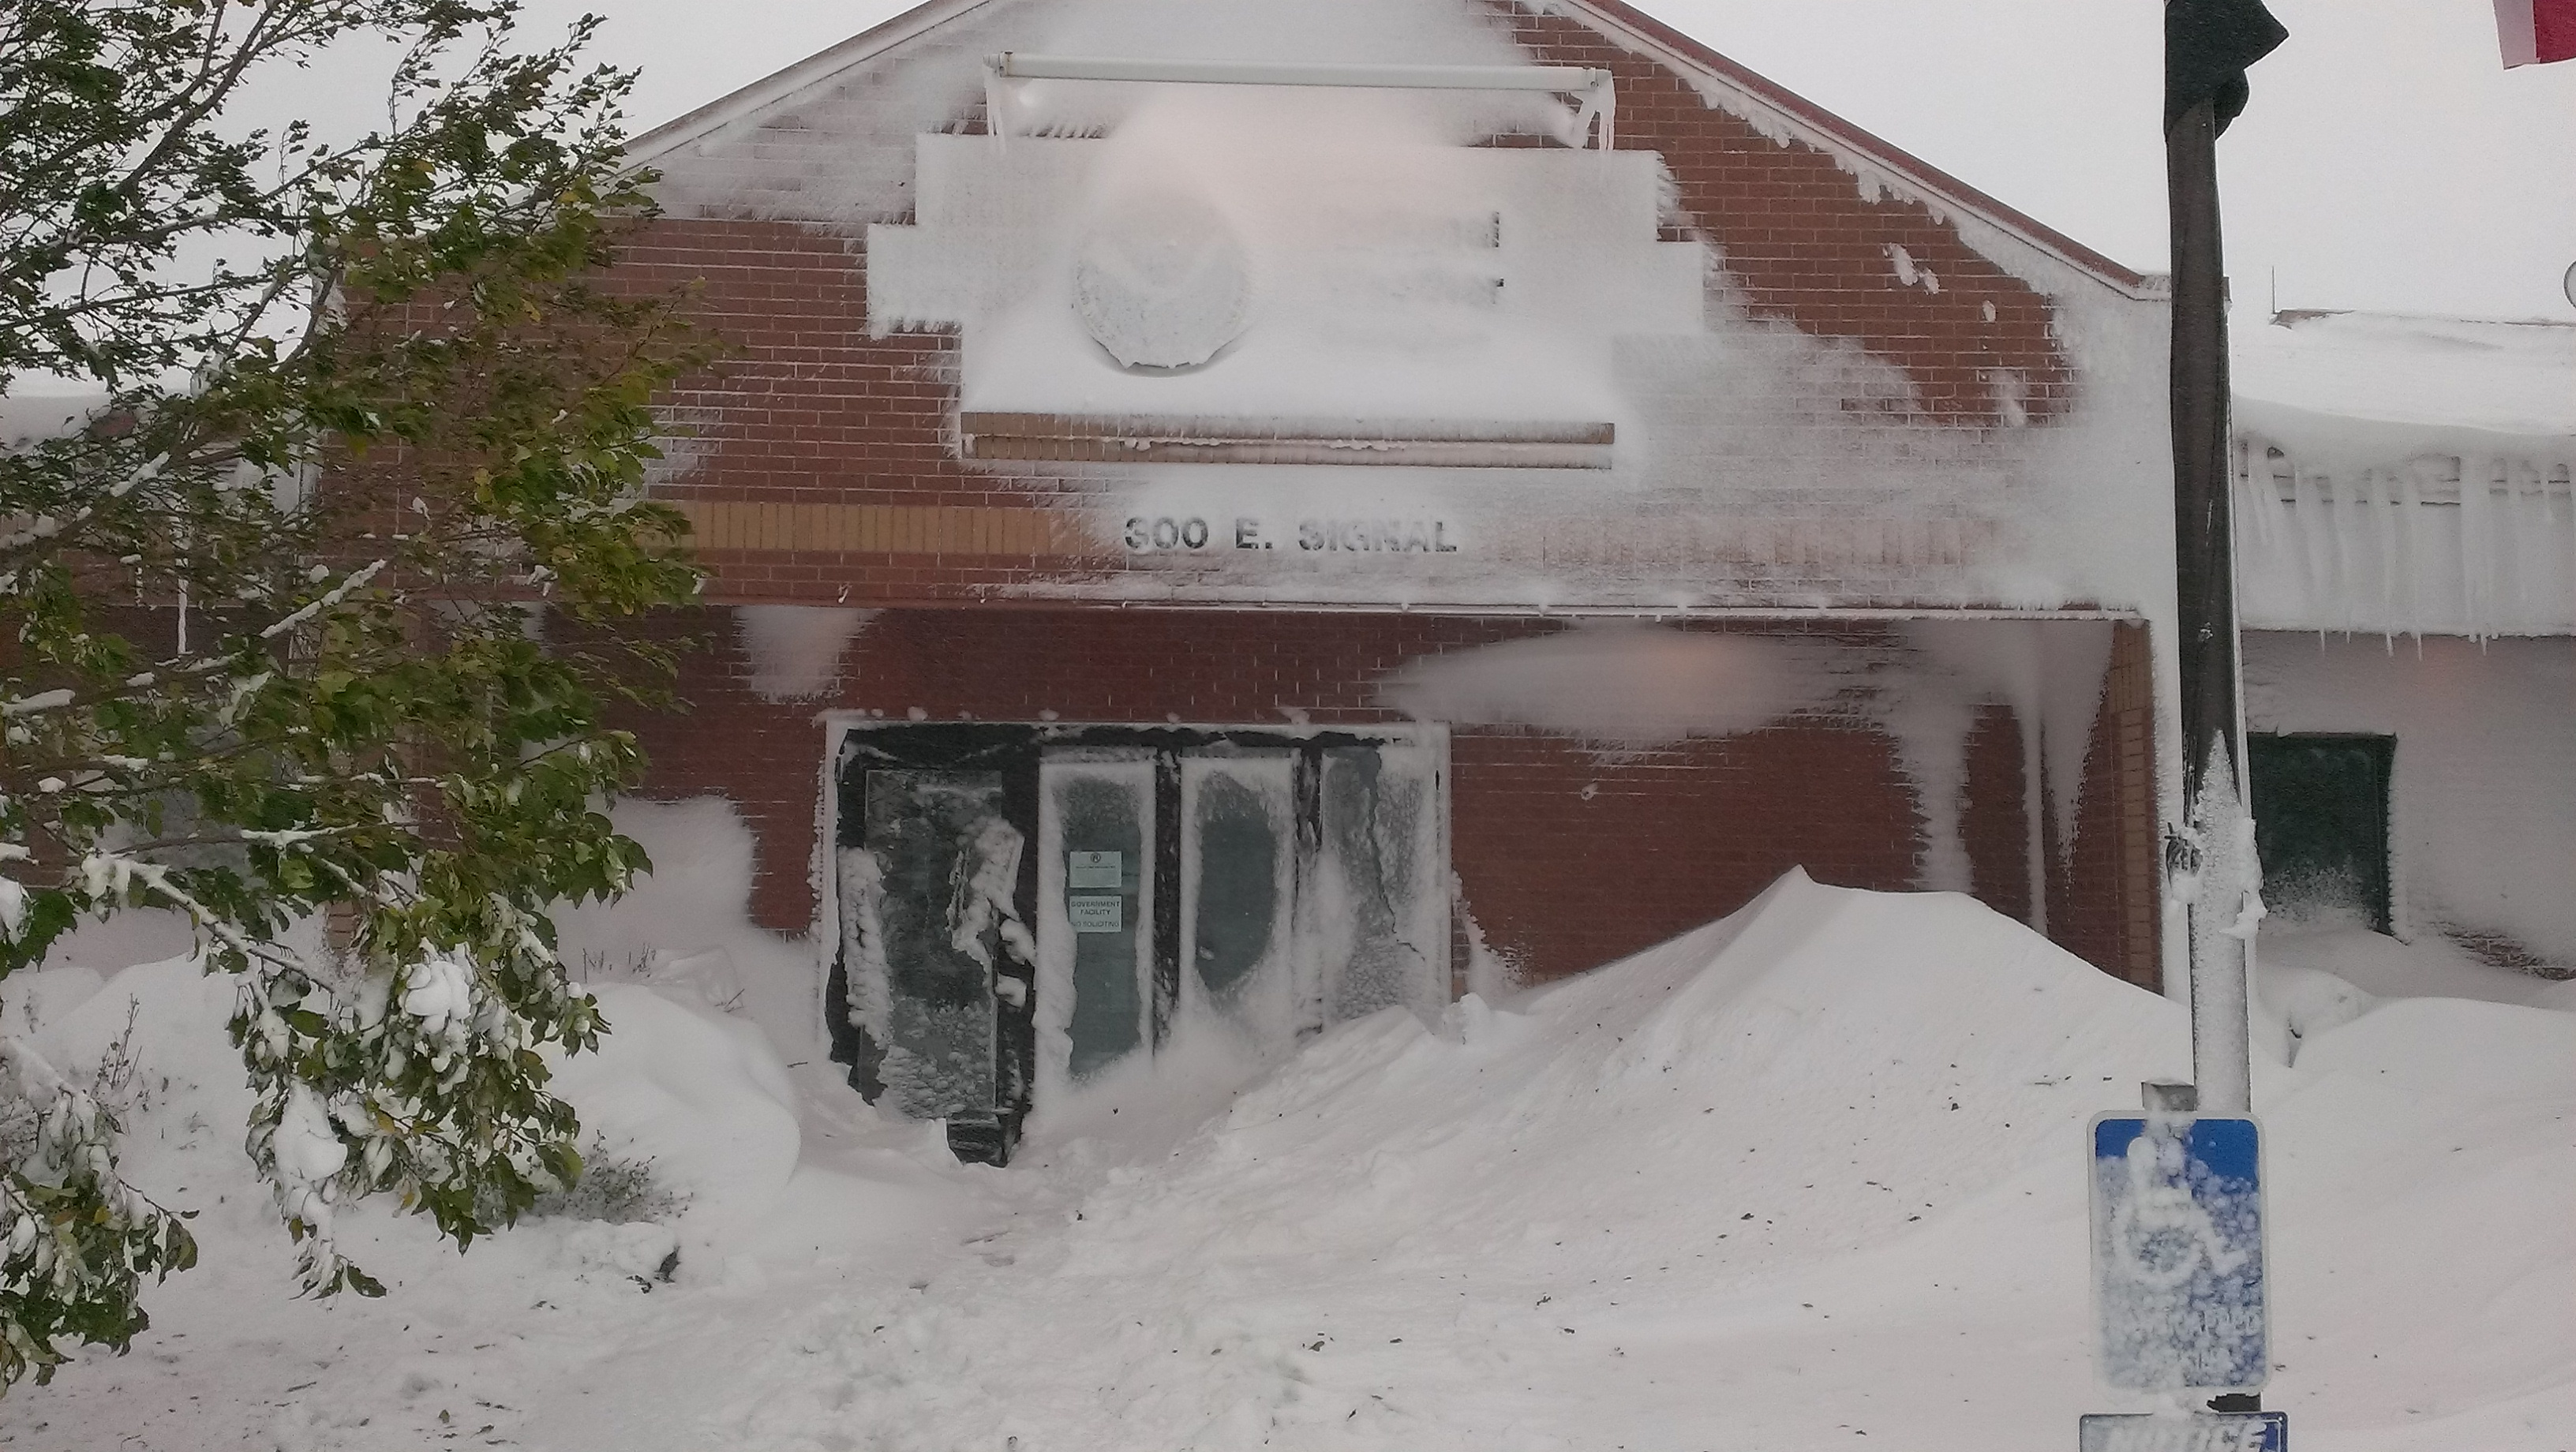 The Rapid City National Weather Service office after the blizzard.